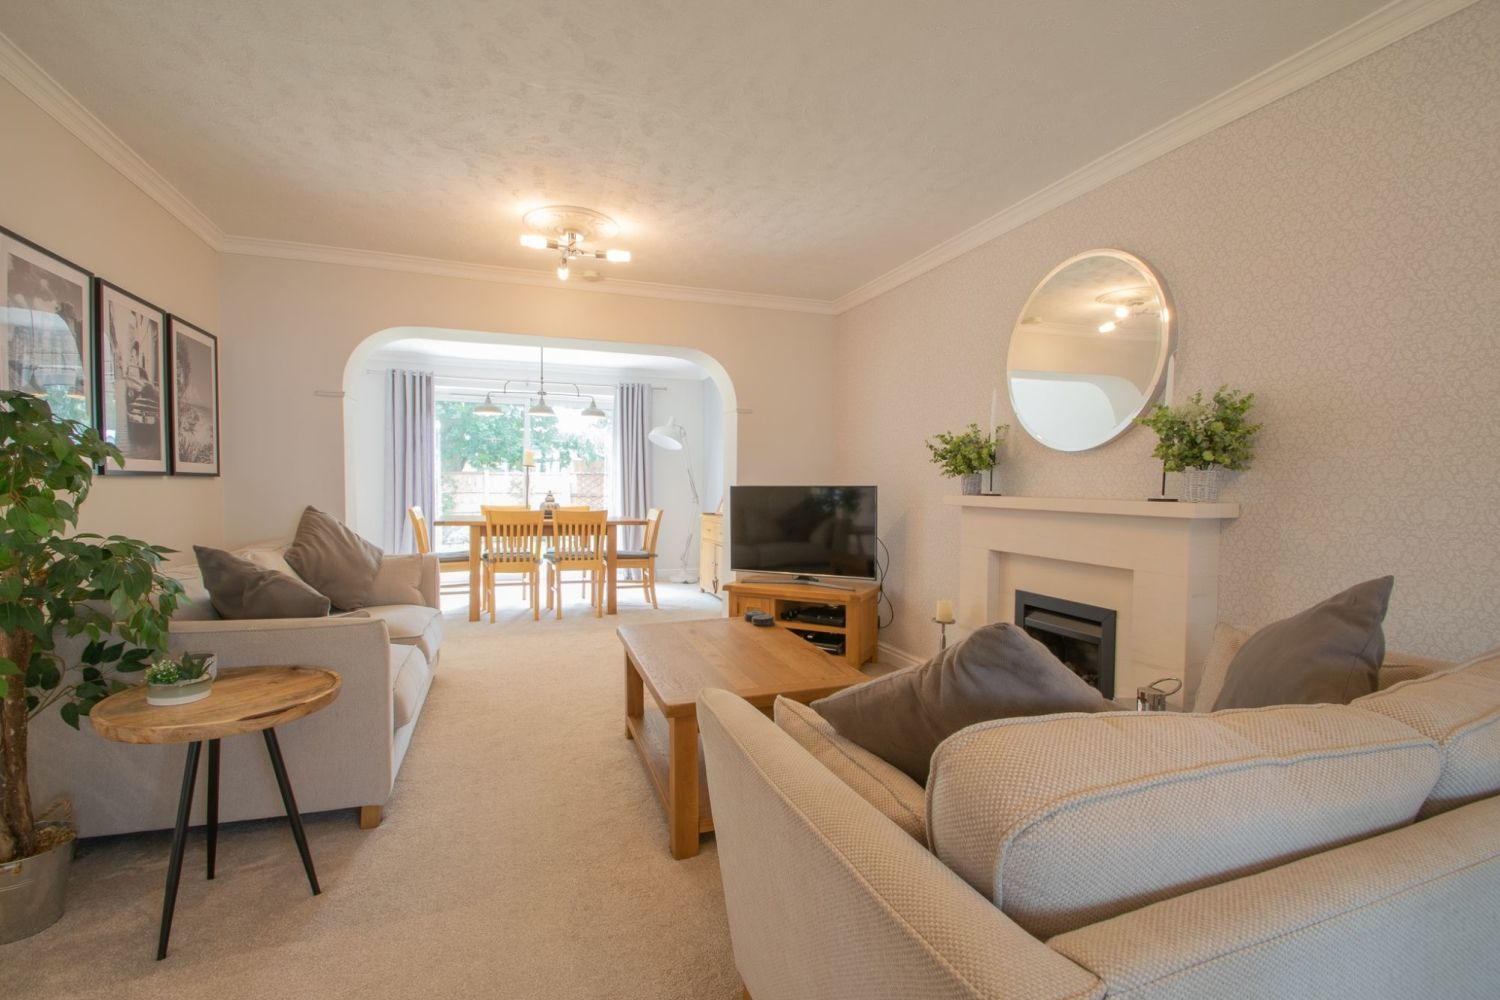 3 bed detached for sale in Clyde Avenue, Halesowen 3